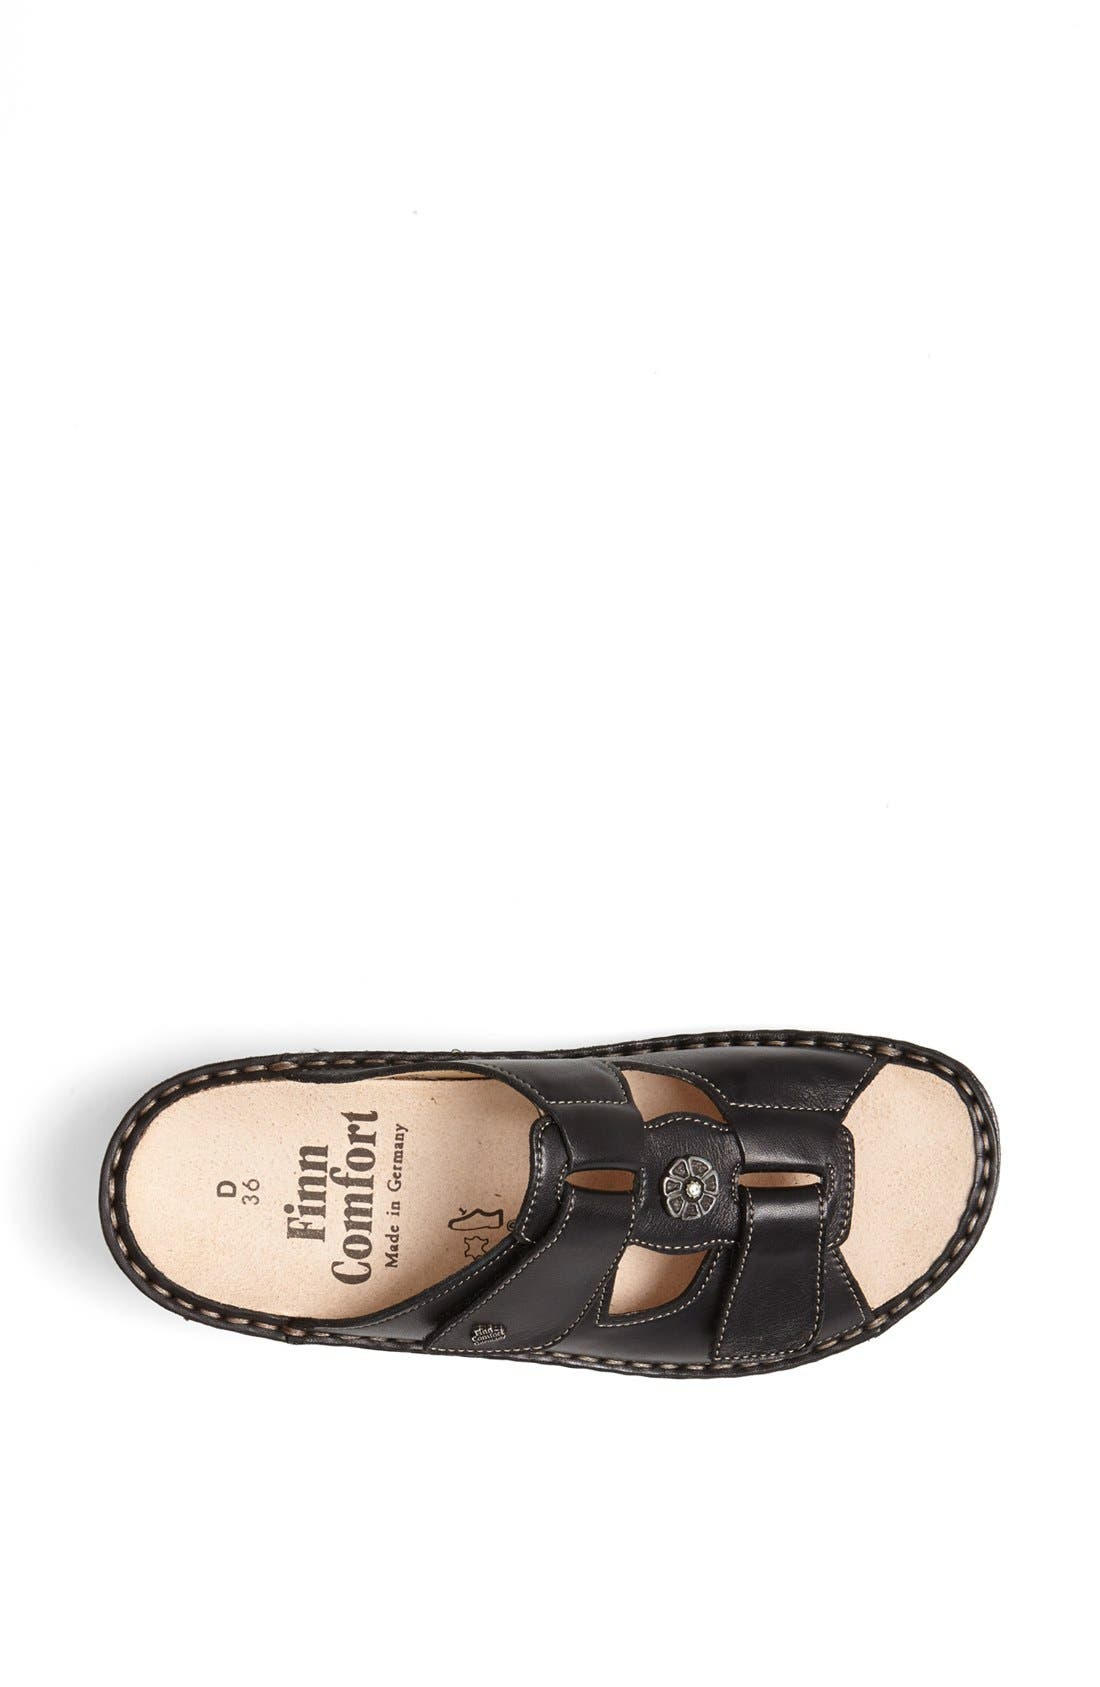 Alternate Image 3  - Finn Comfort 'Pattaya' Leather Sandal